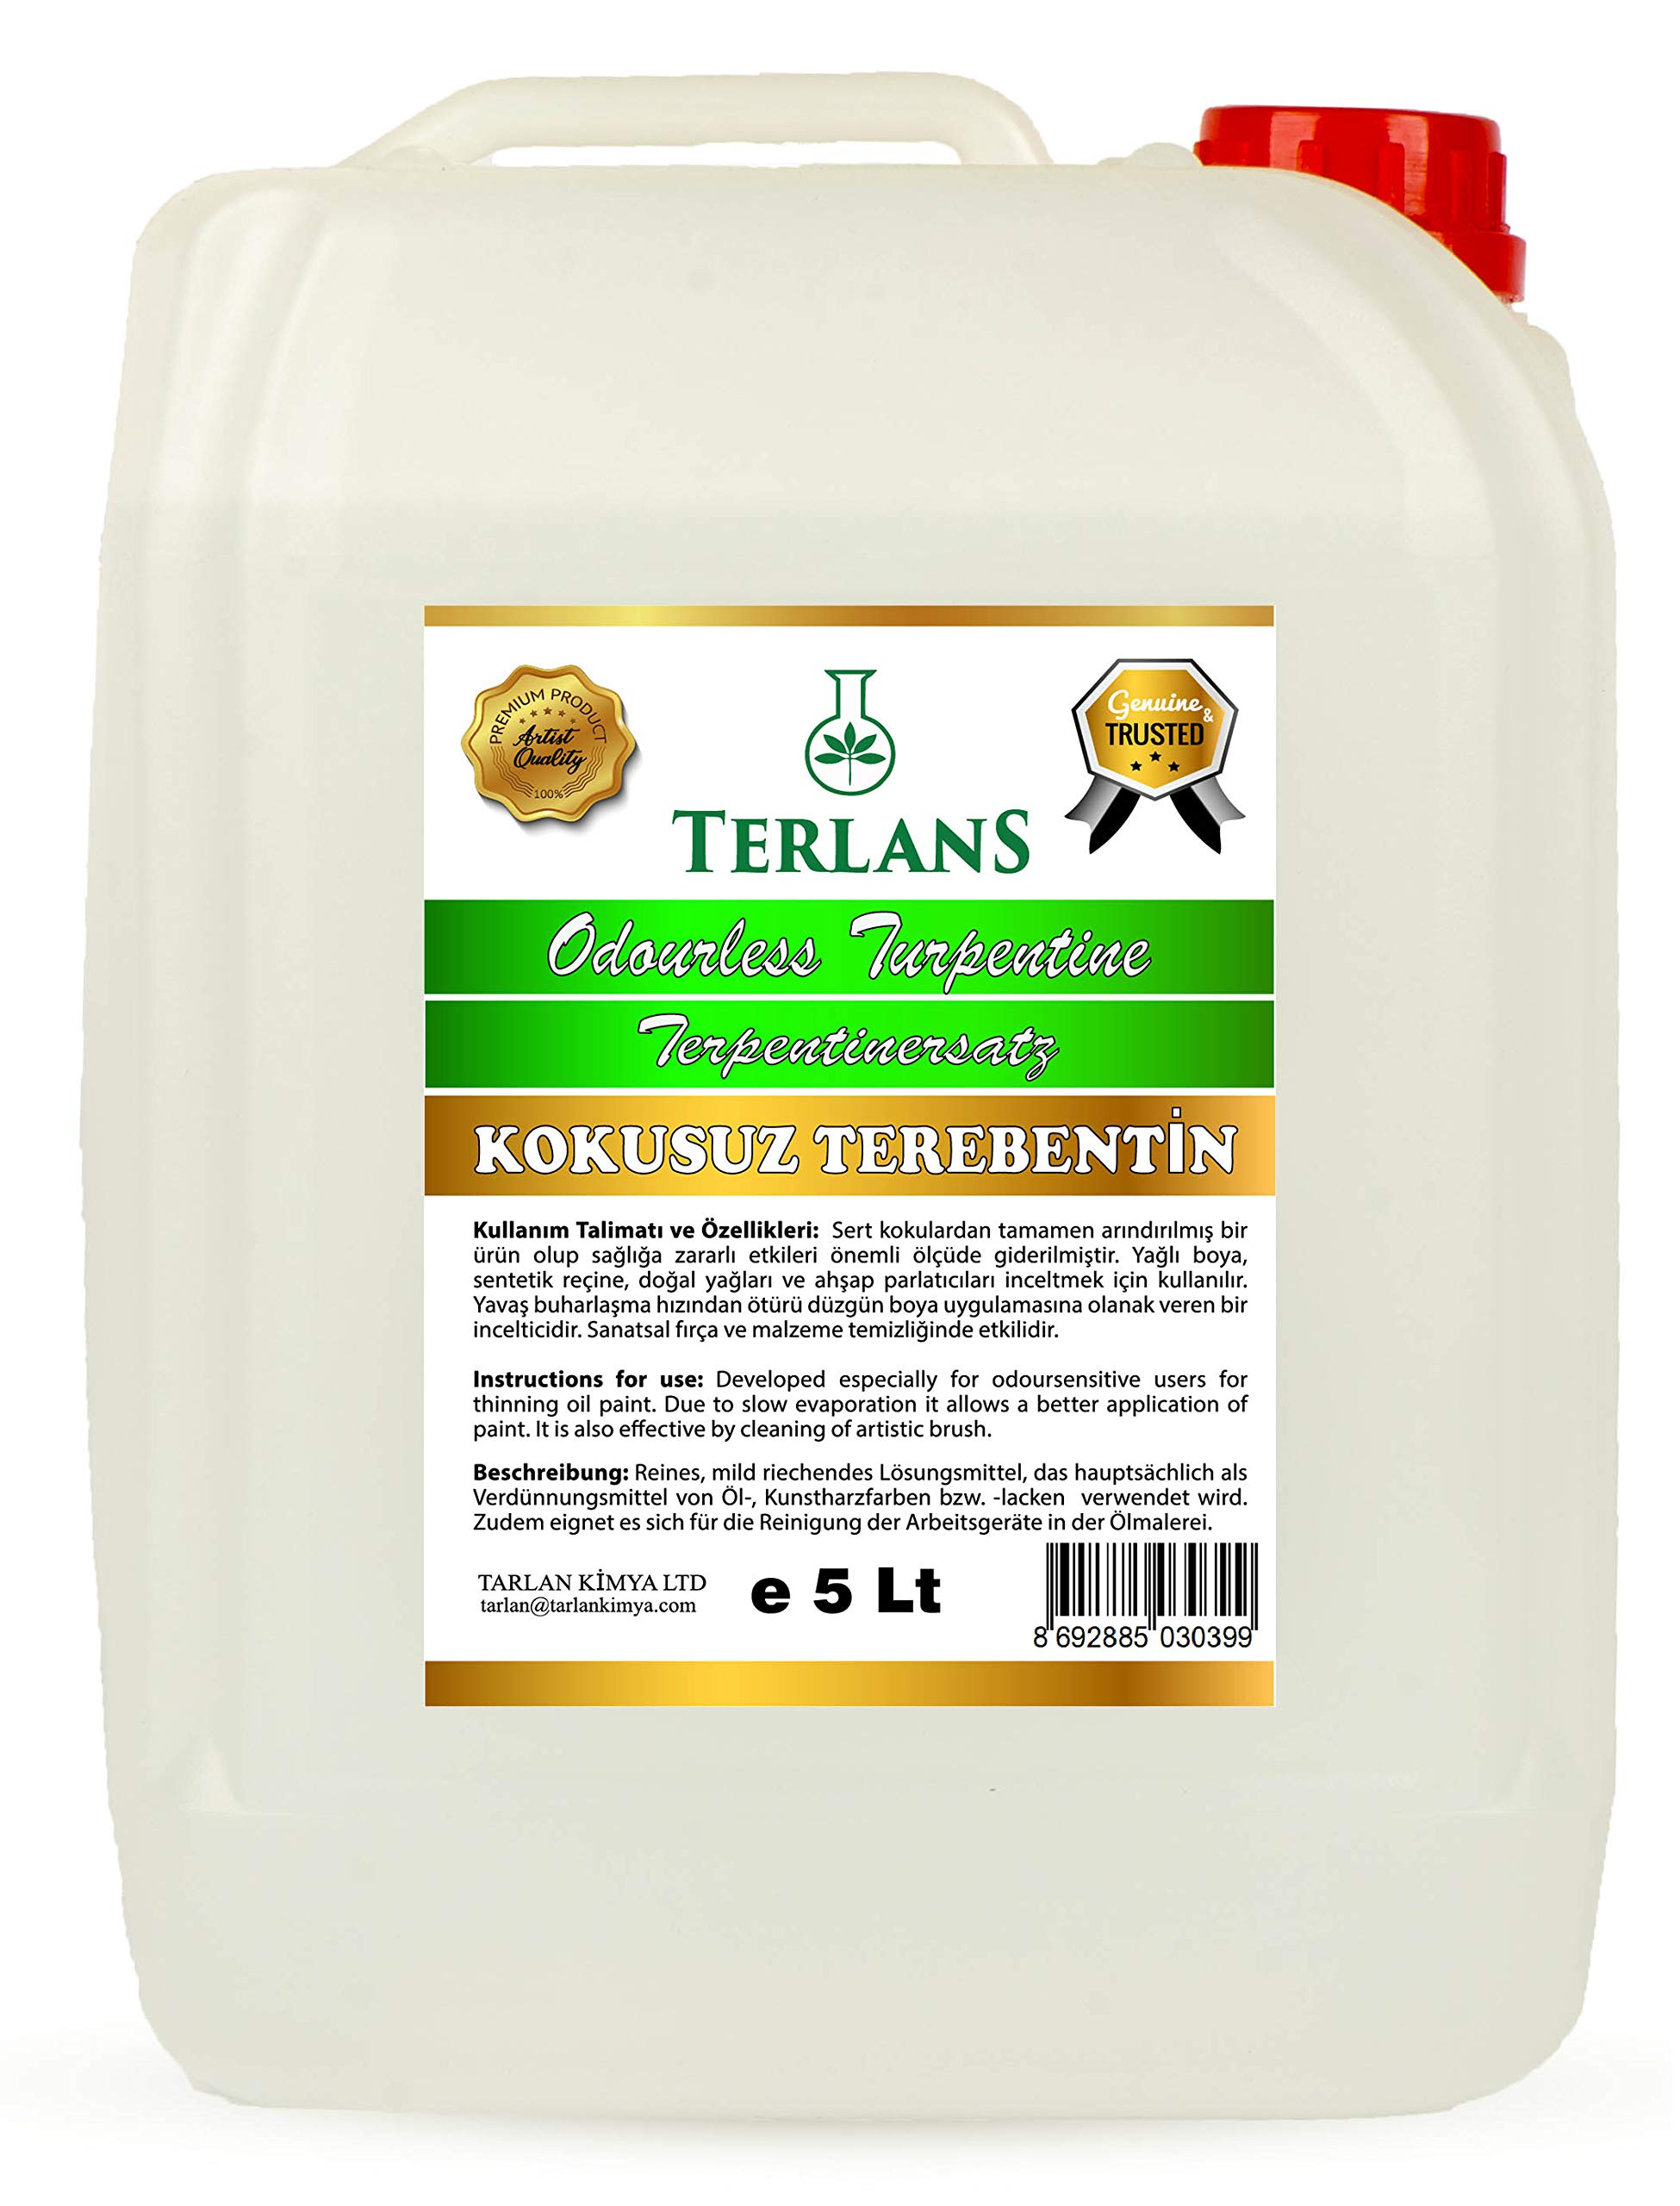 TERLANS Odorless Turpentine Substitute White Spirit Oil Paint Thinner 5 Liter by TERLANS